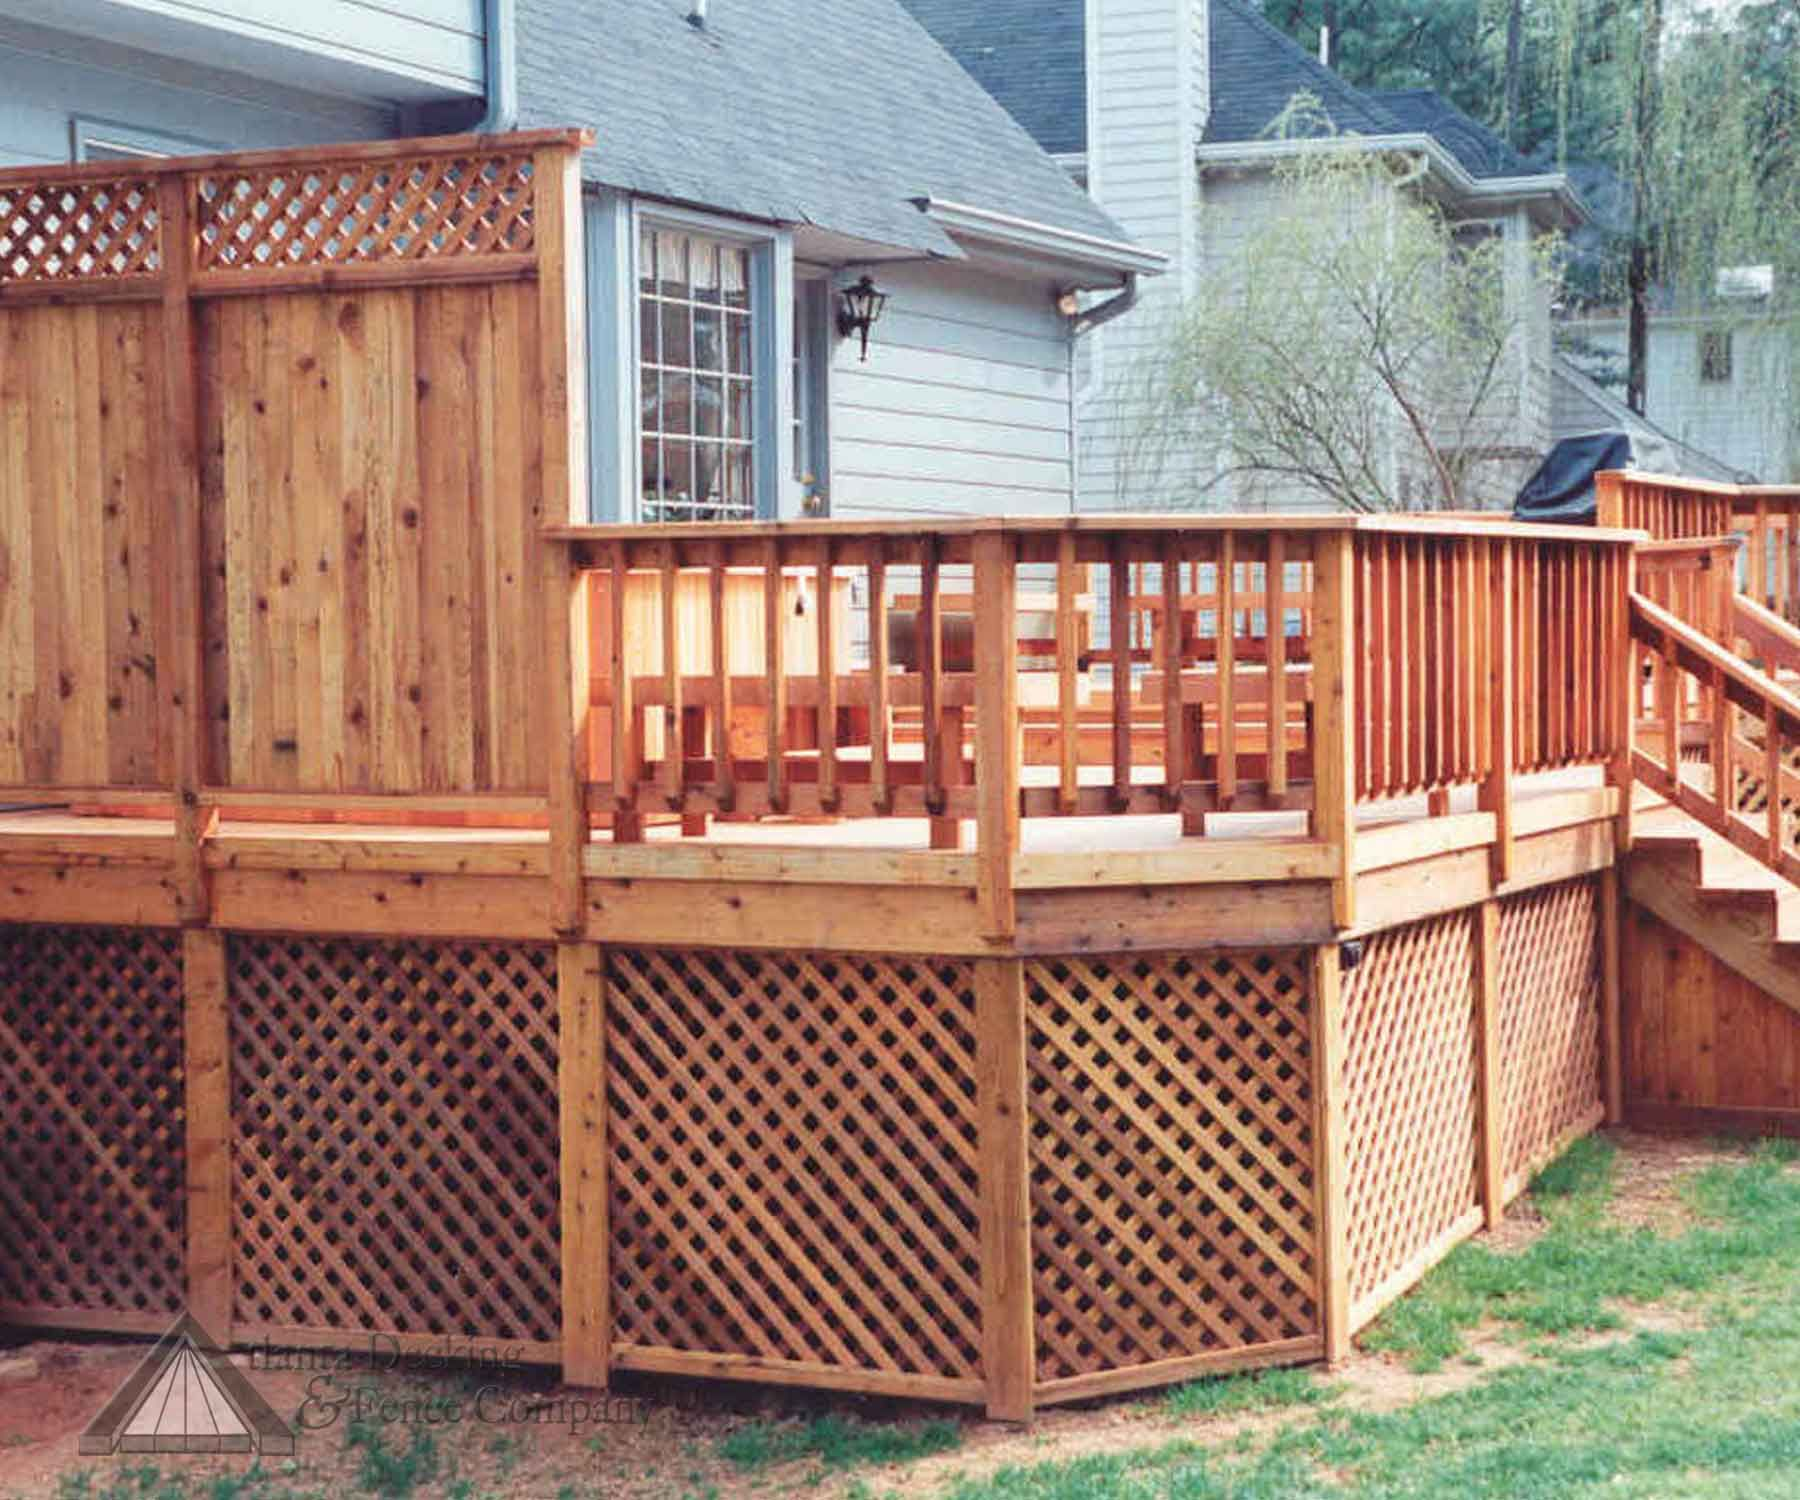 Decks With Privacy Screen Google Search With Images Privacy Screen Deck Deck Privacy Above Ground Pool Decks